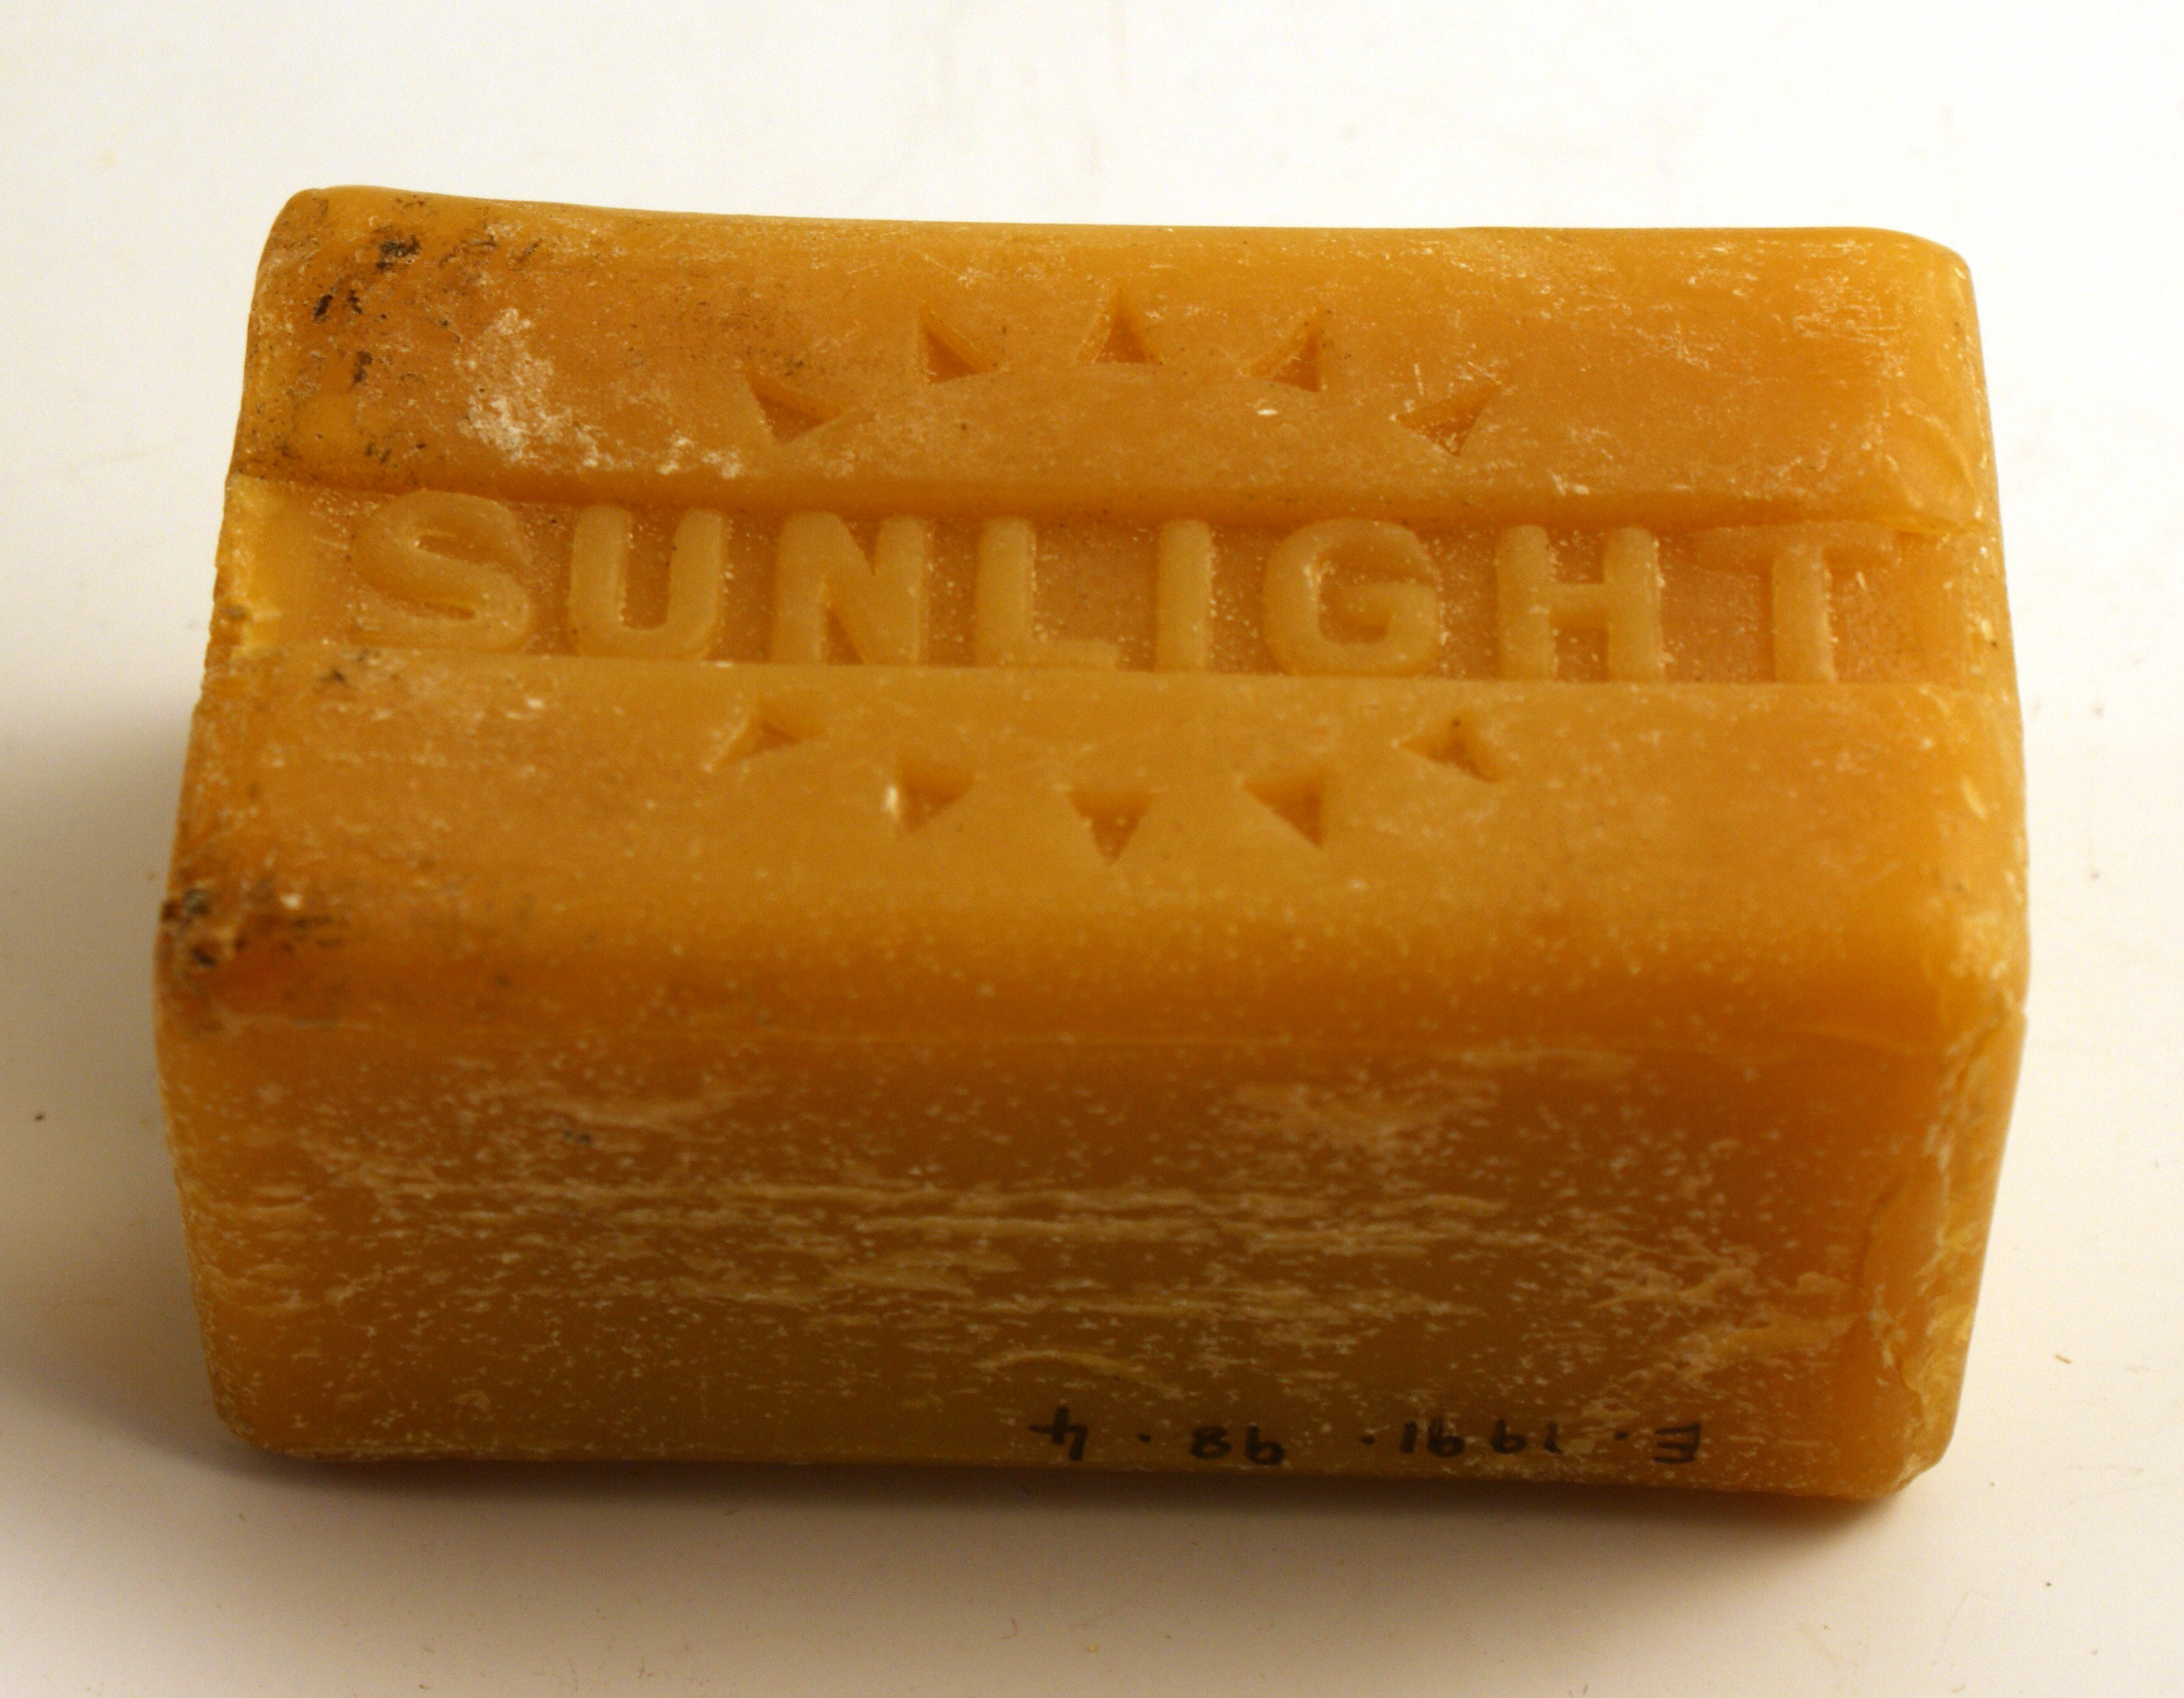 Bar of orange coloured solid soap with the word 'Sunlight' embossed on it.